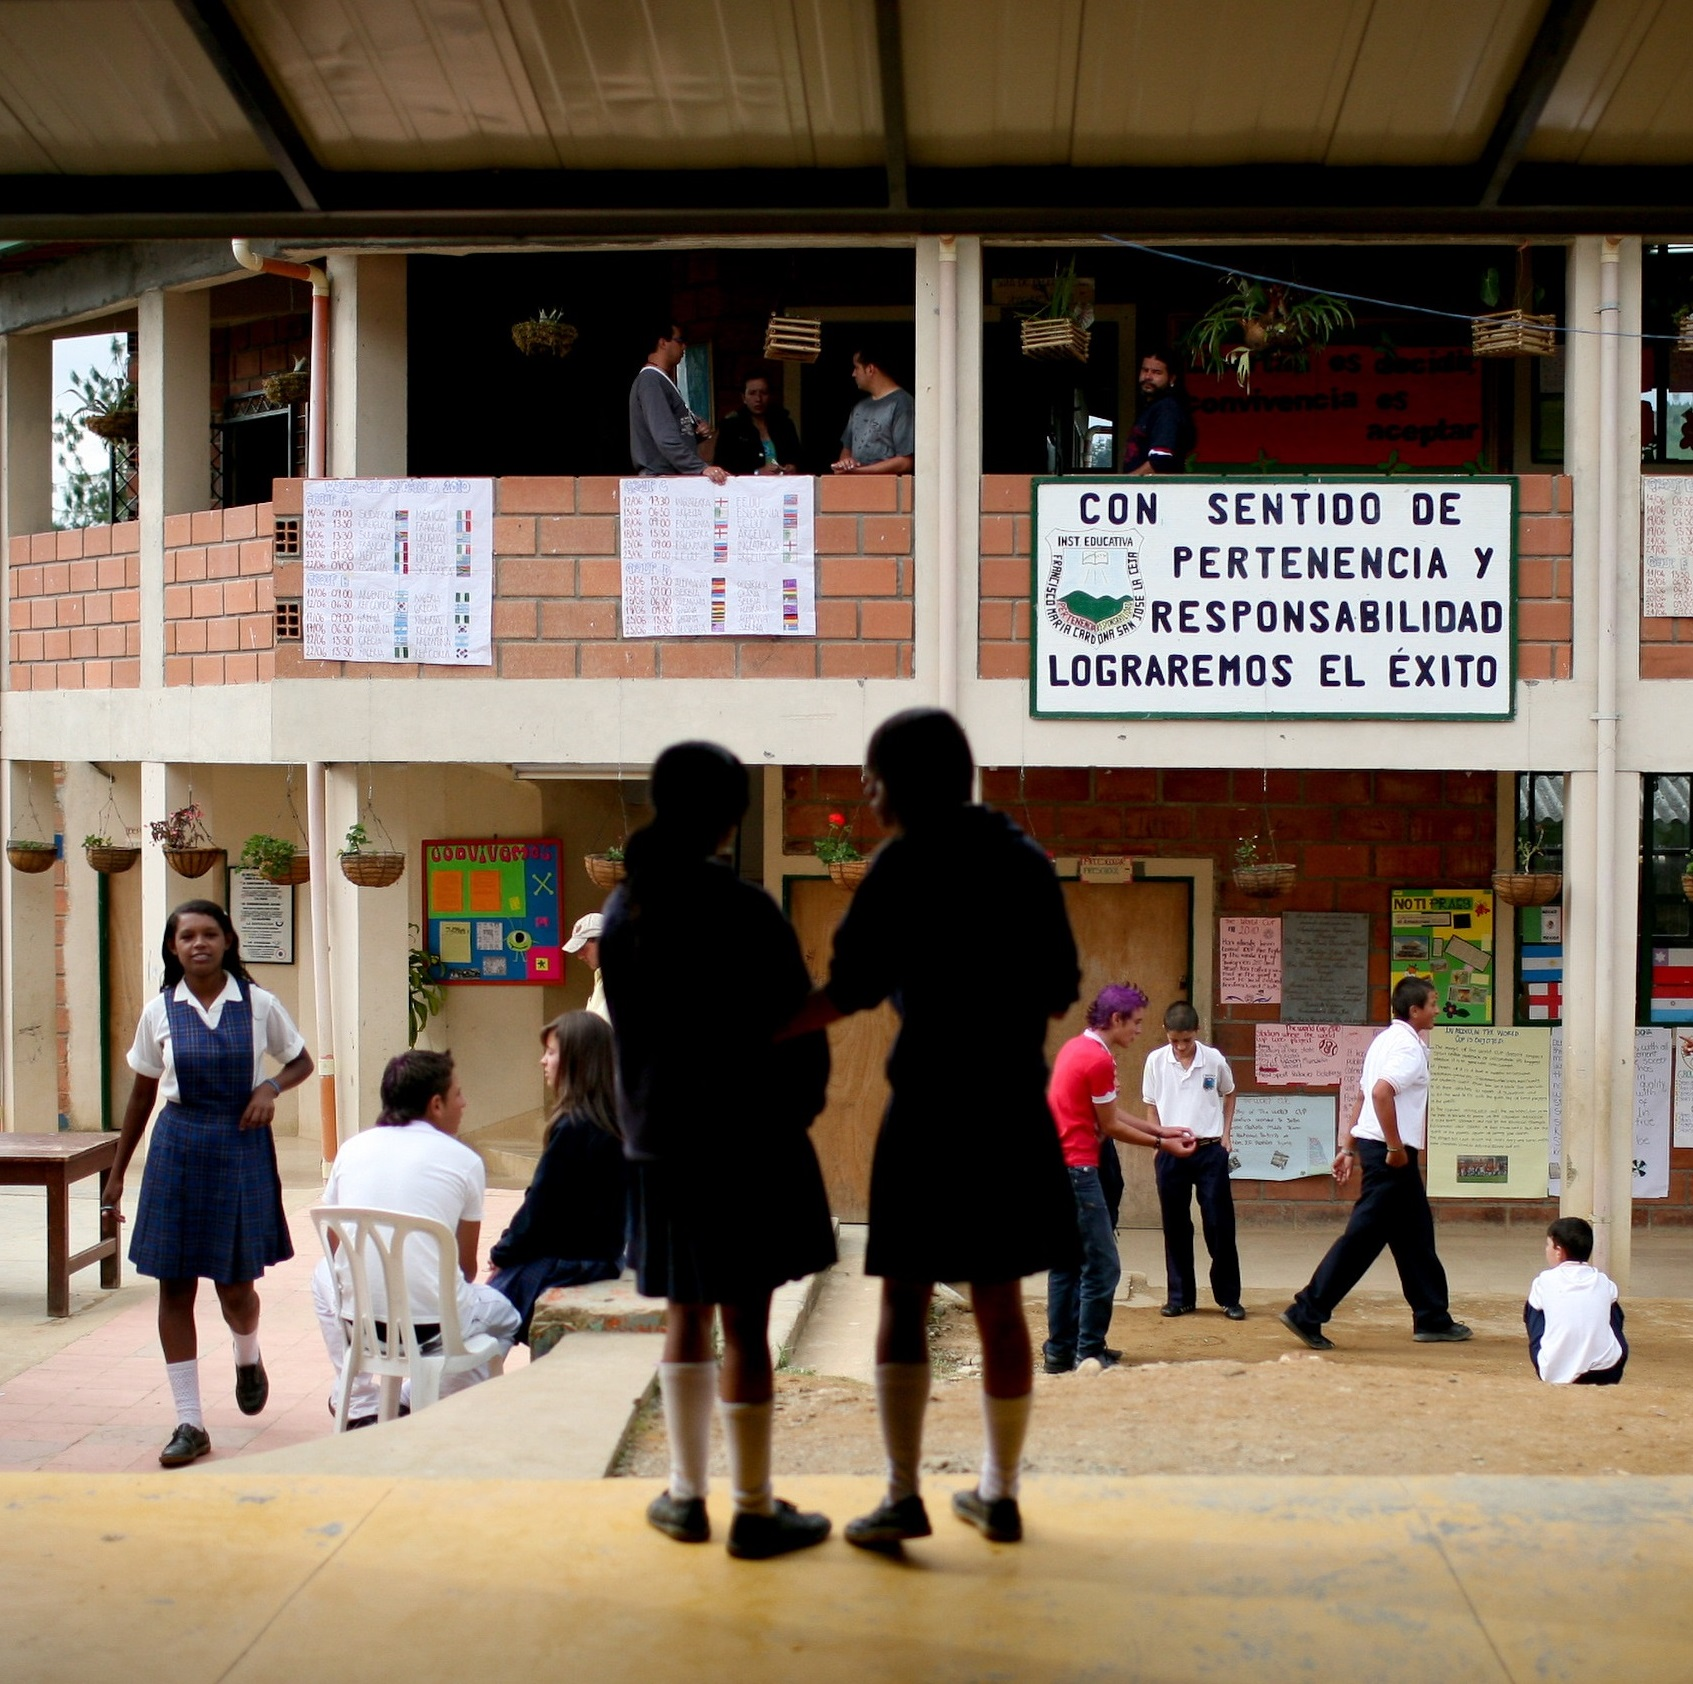 Pupils talking and walking in a school yard in a school in Colombia